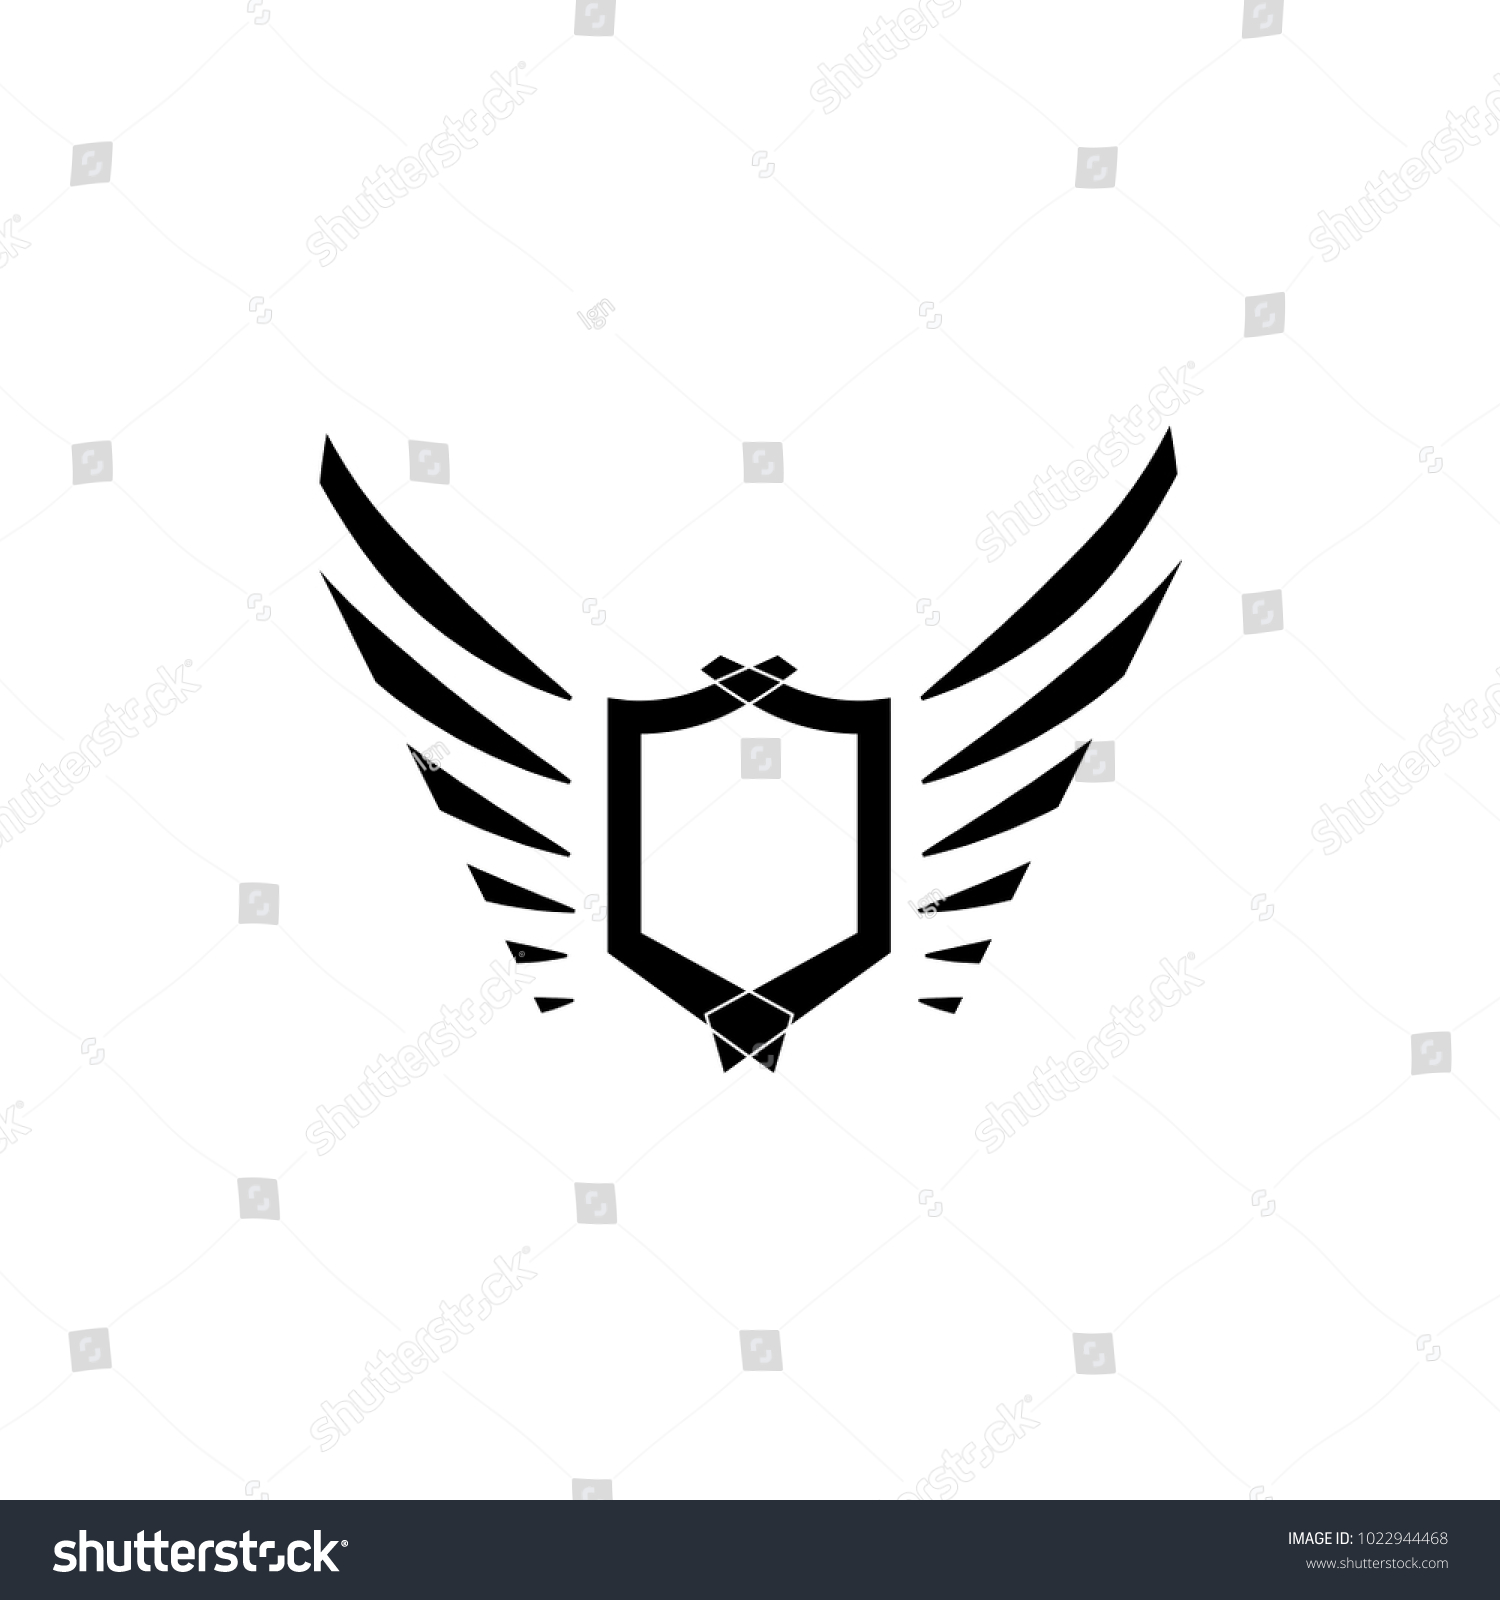 Wings Logo Vector Icon Sign Graphic Illustration Symbol Eagle Wing Diagram Of Bald Id 1022944468